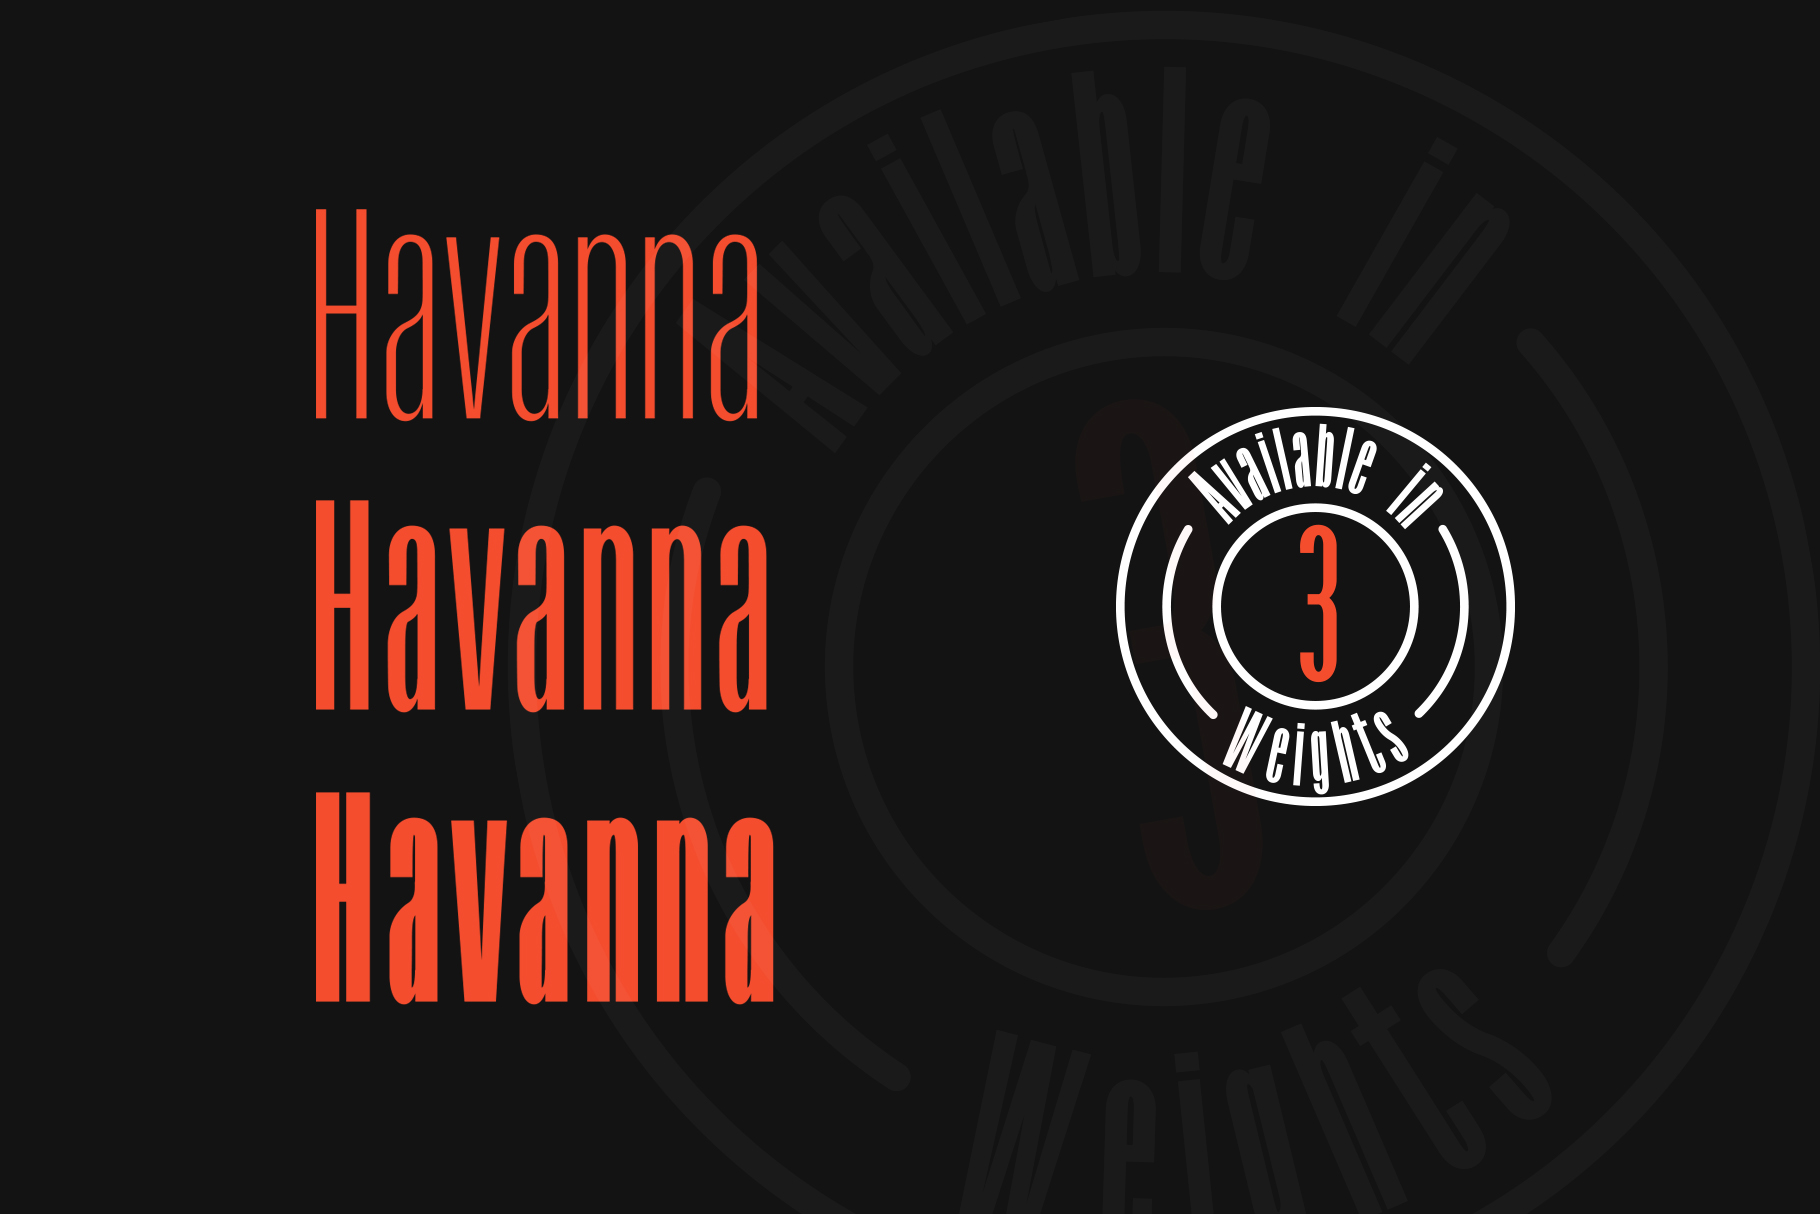 Havanna - Tall sans typeface with 3 weights example image 3